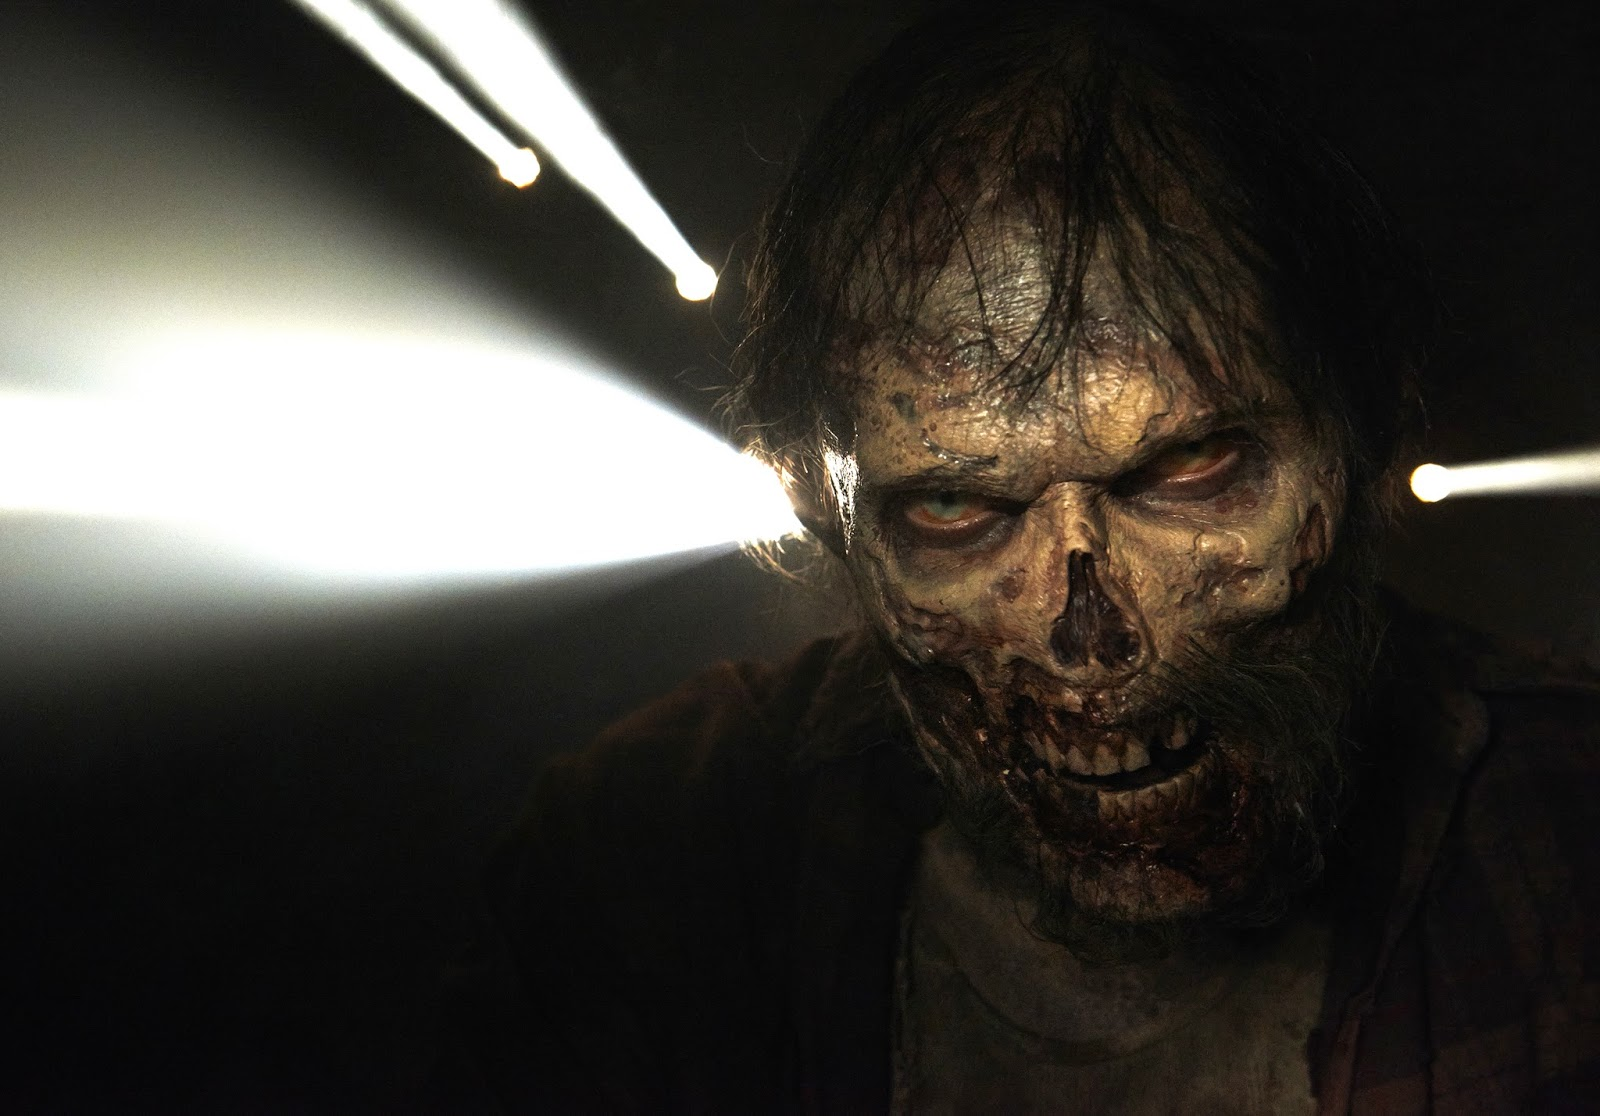 The Walking Dead Season Five: New Images & Teaser Clips - Zombie of the Week